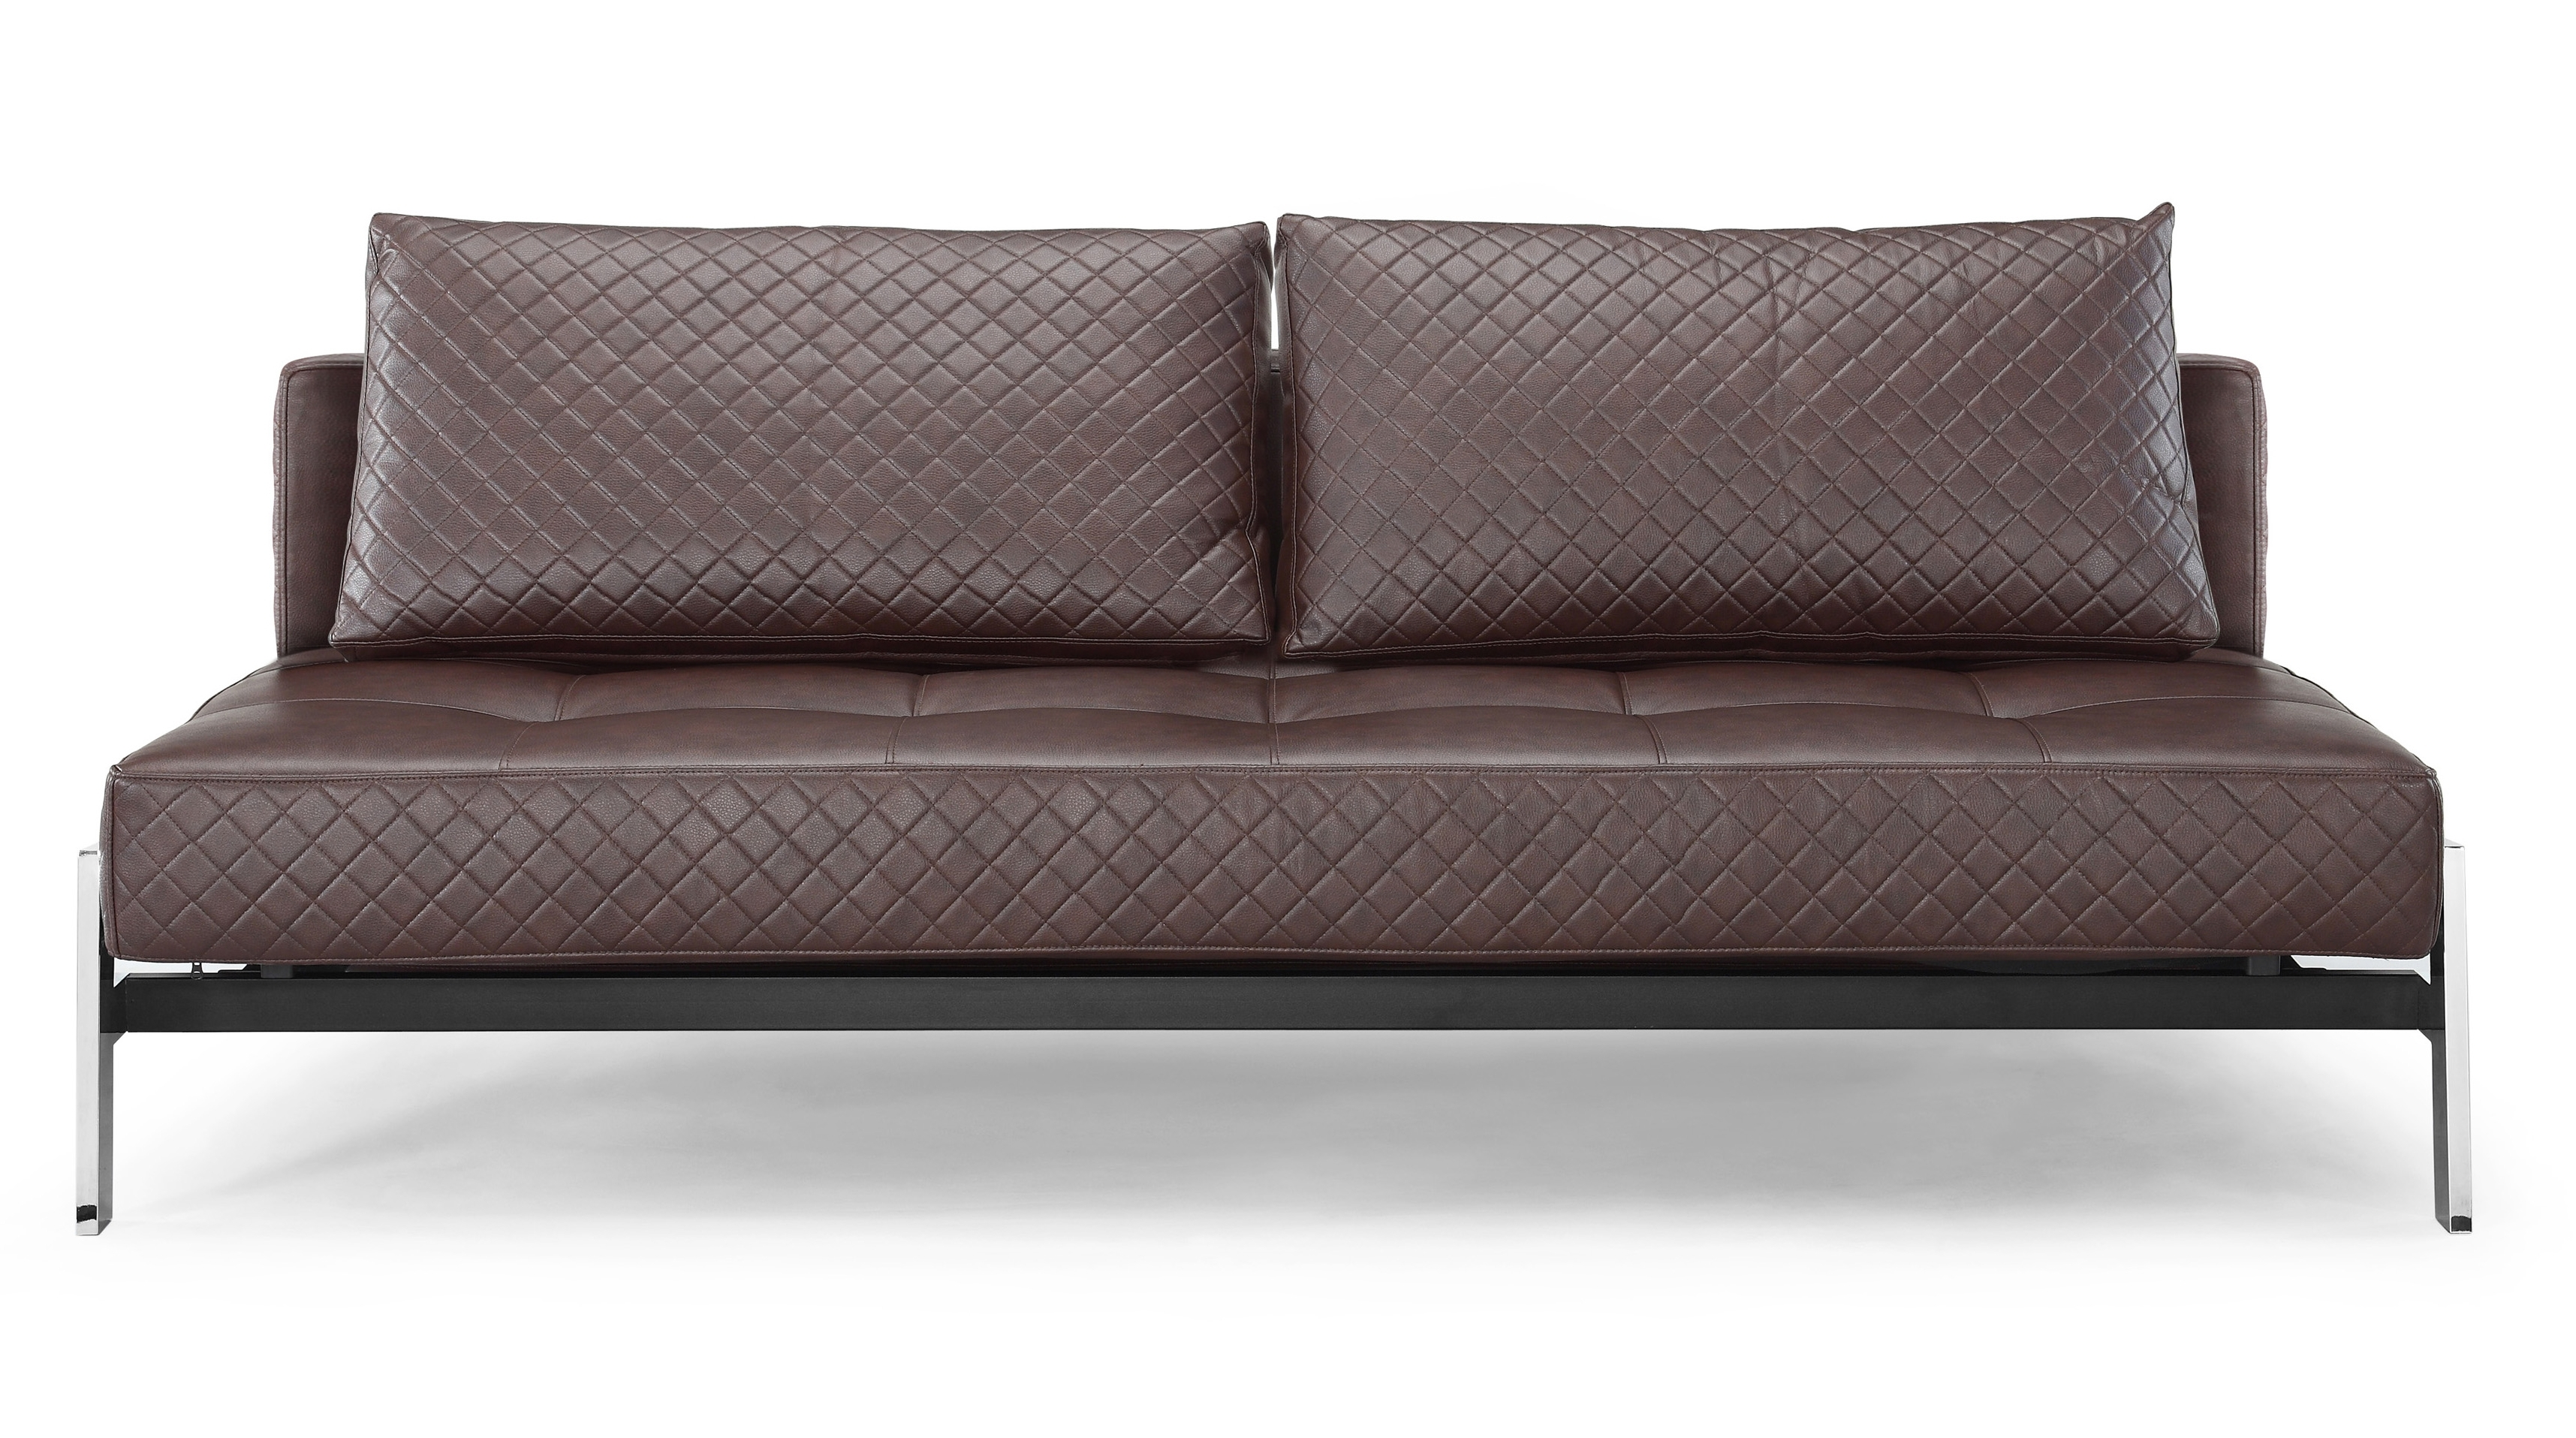 Convertible Sofas Pertaining To Most Up To Date Lifestyle Solutions Denmark Convertible Sofa Mc Dem (View 5 of 20)